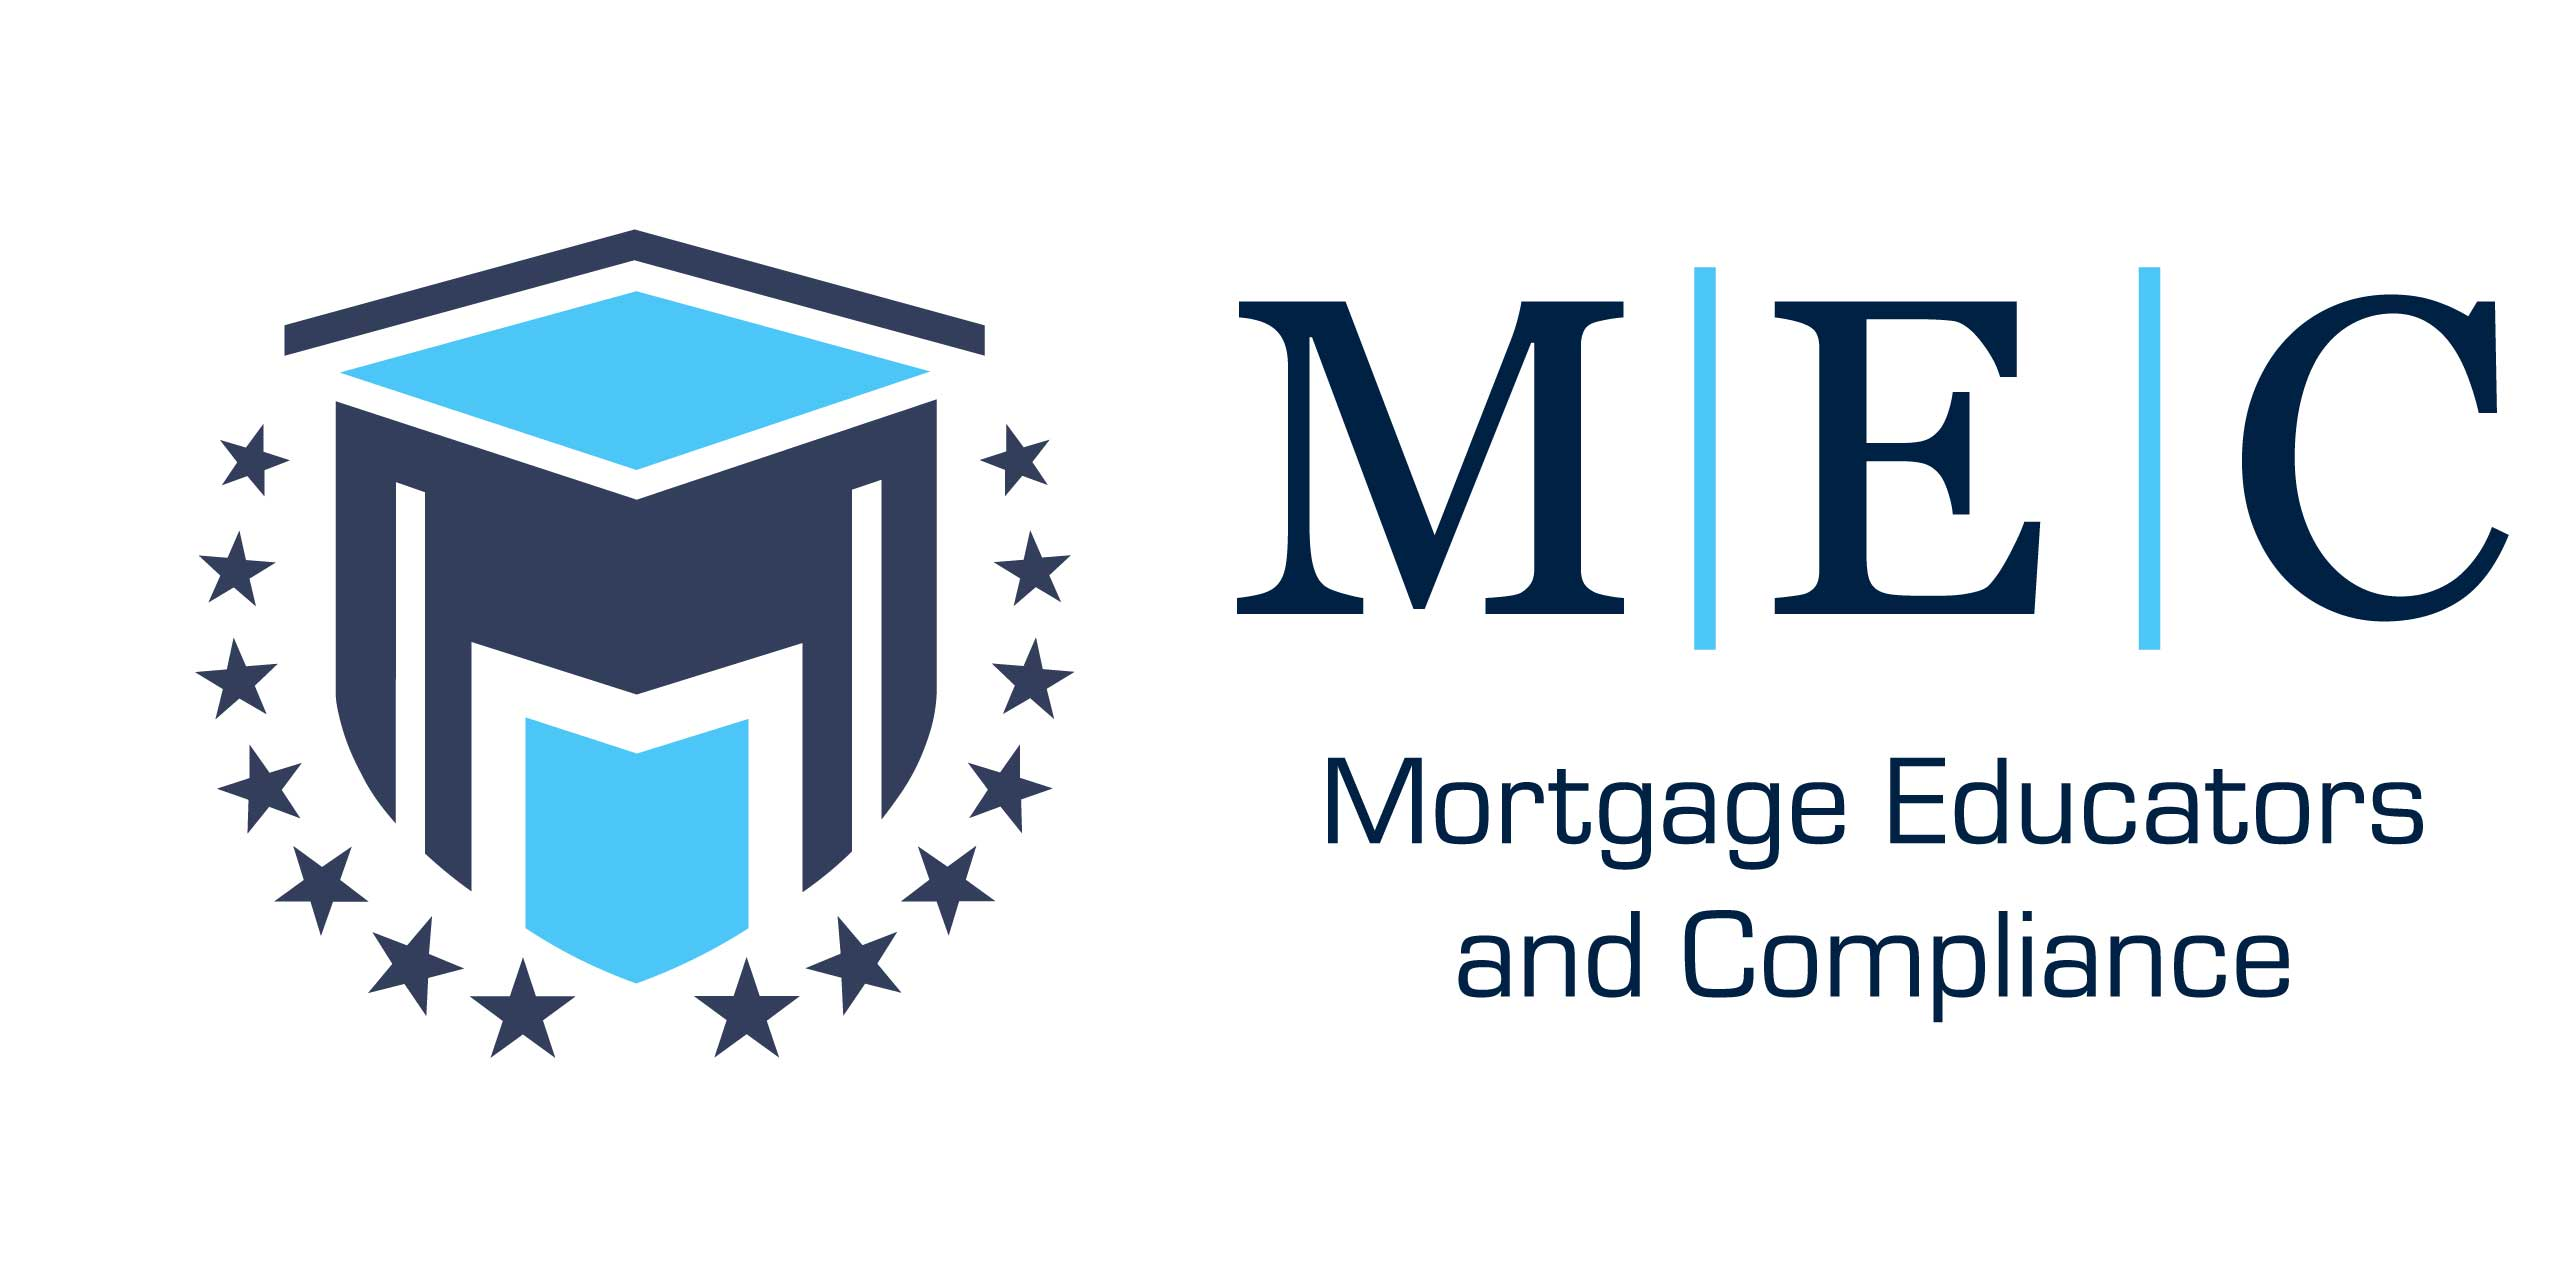 Mortgage Educators & Compliance